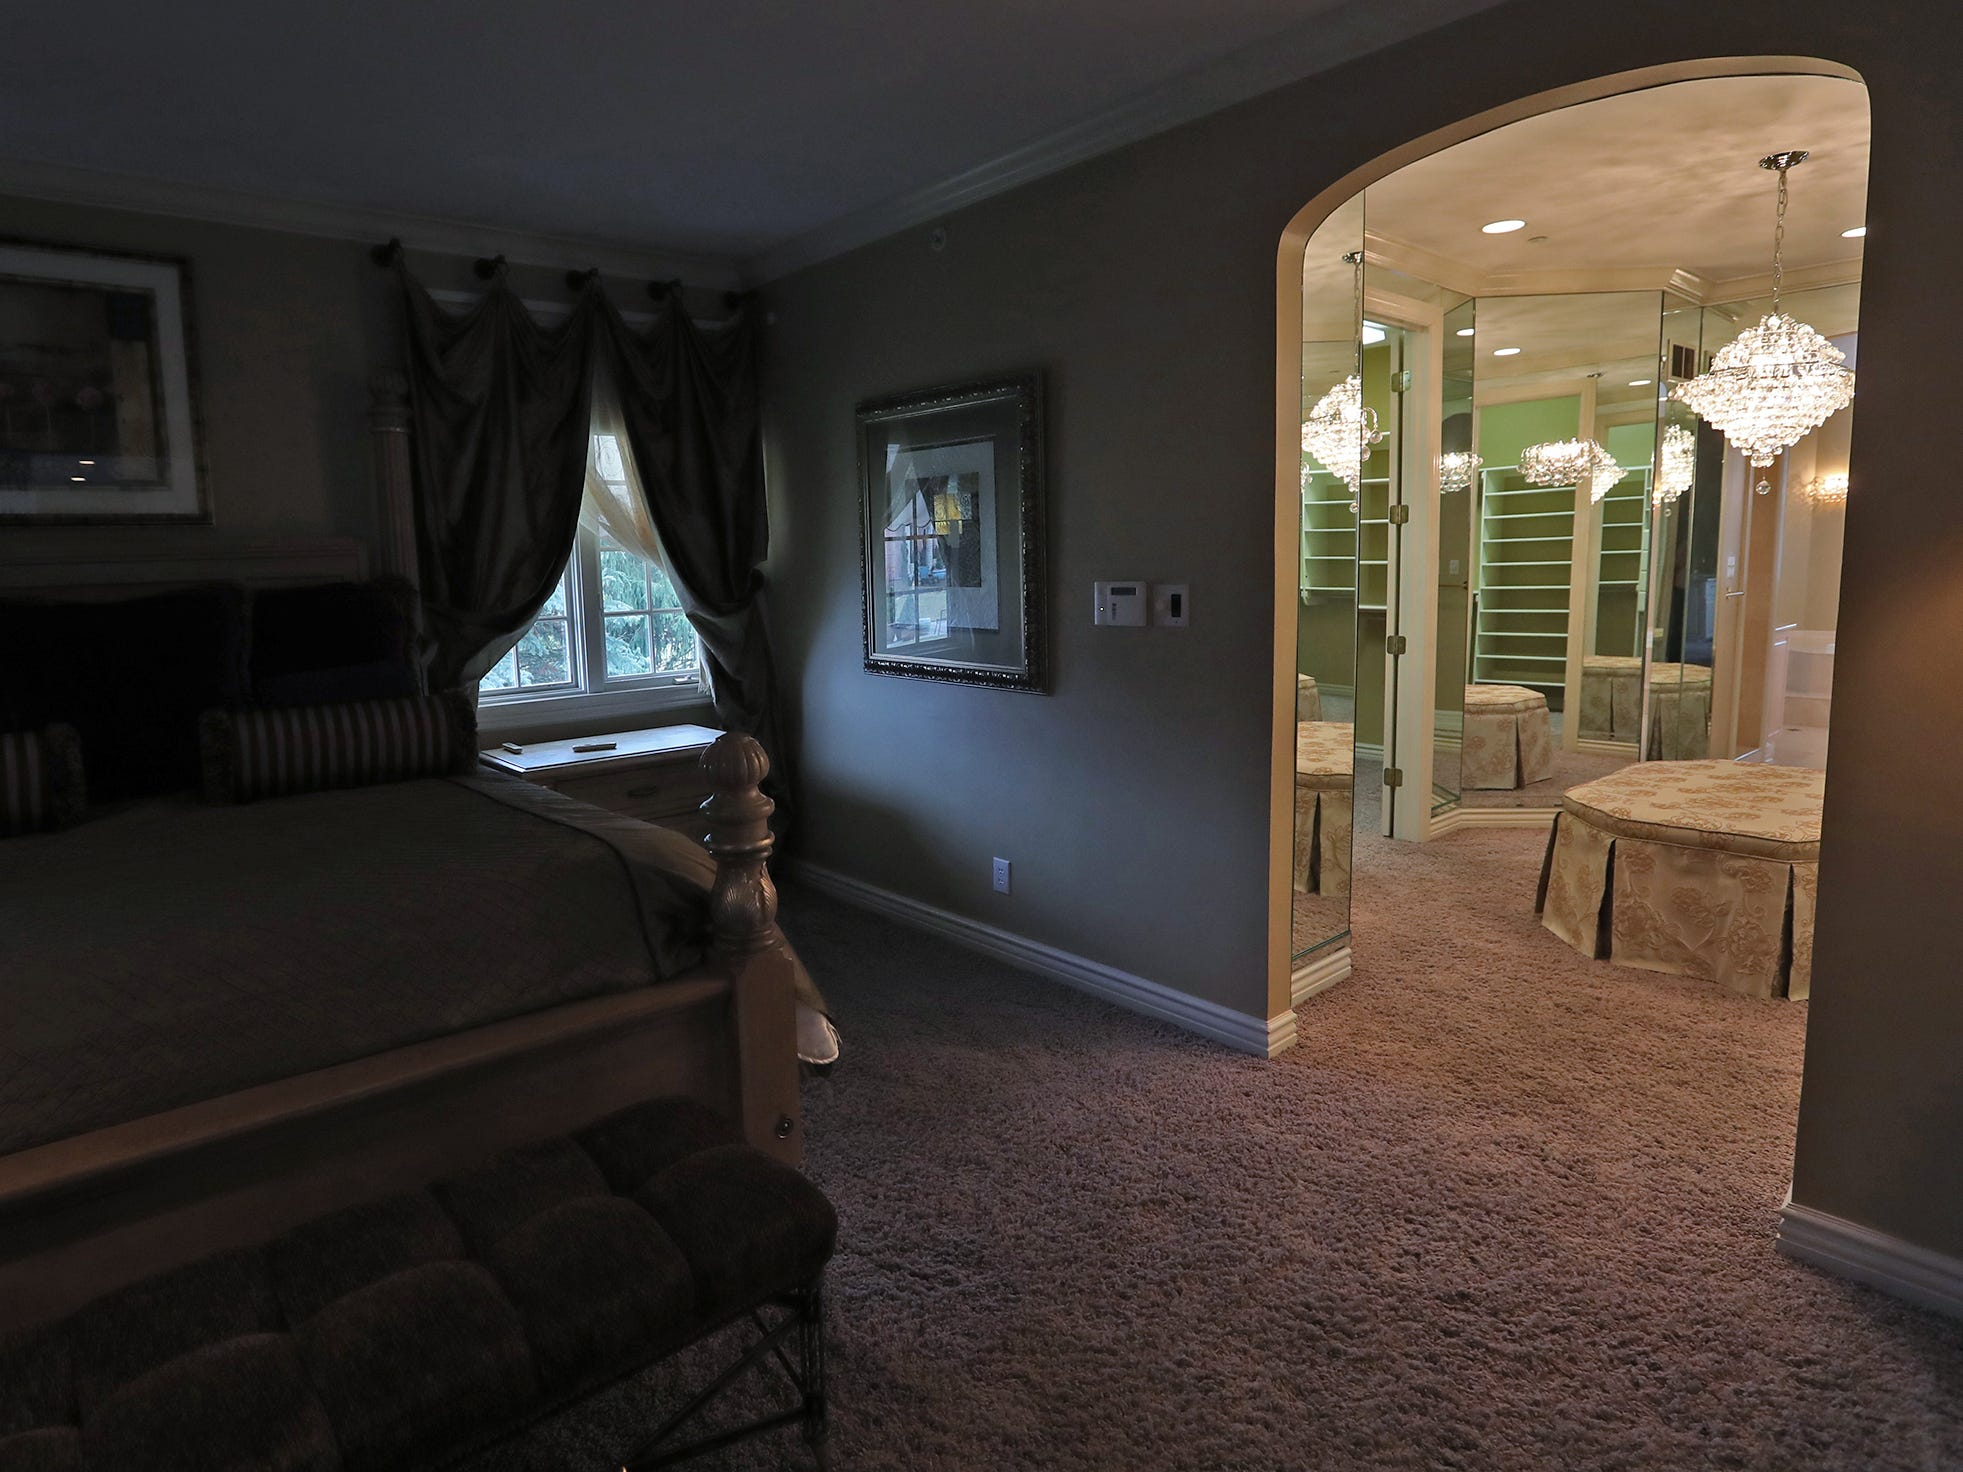 This is the master bedroom in the home at 1270 Laurelwood Ct. in Carmel, Friday, Dec. 28, 2018.  It includes a huge closet surrounded by mirrors, right.